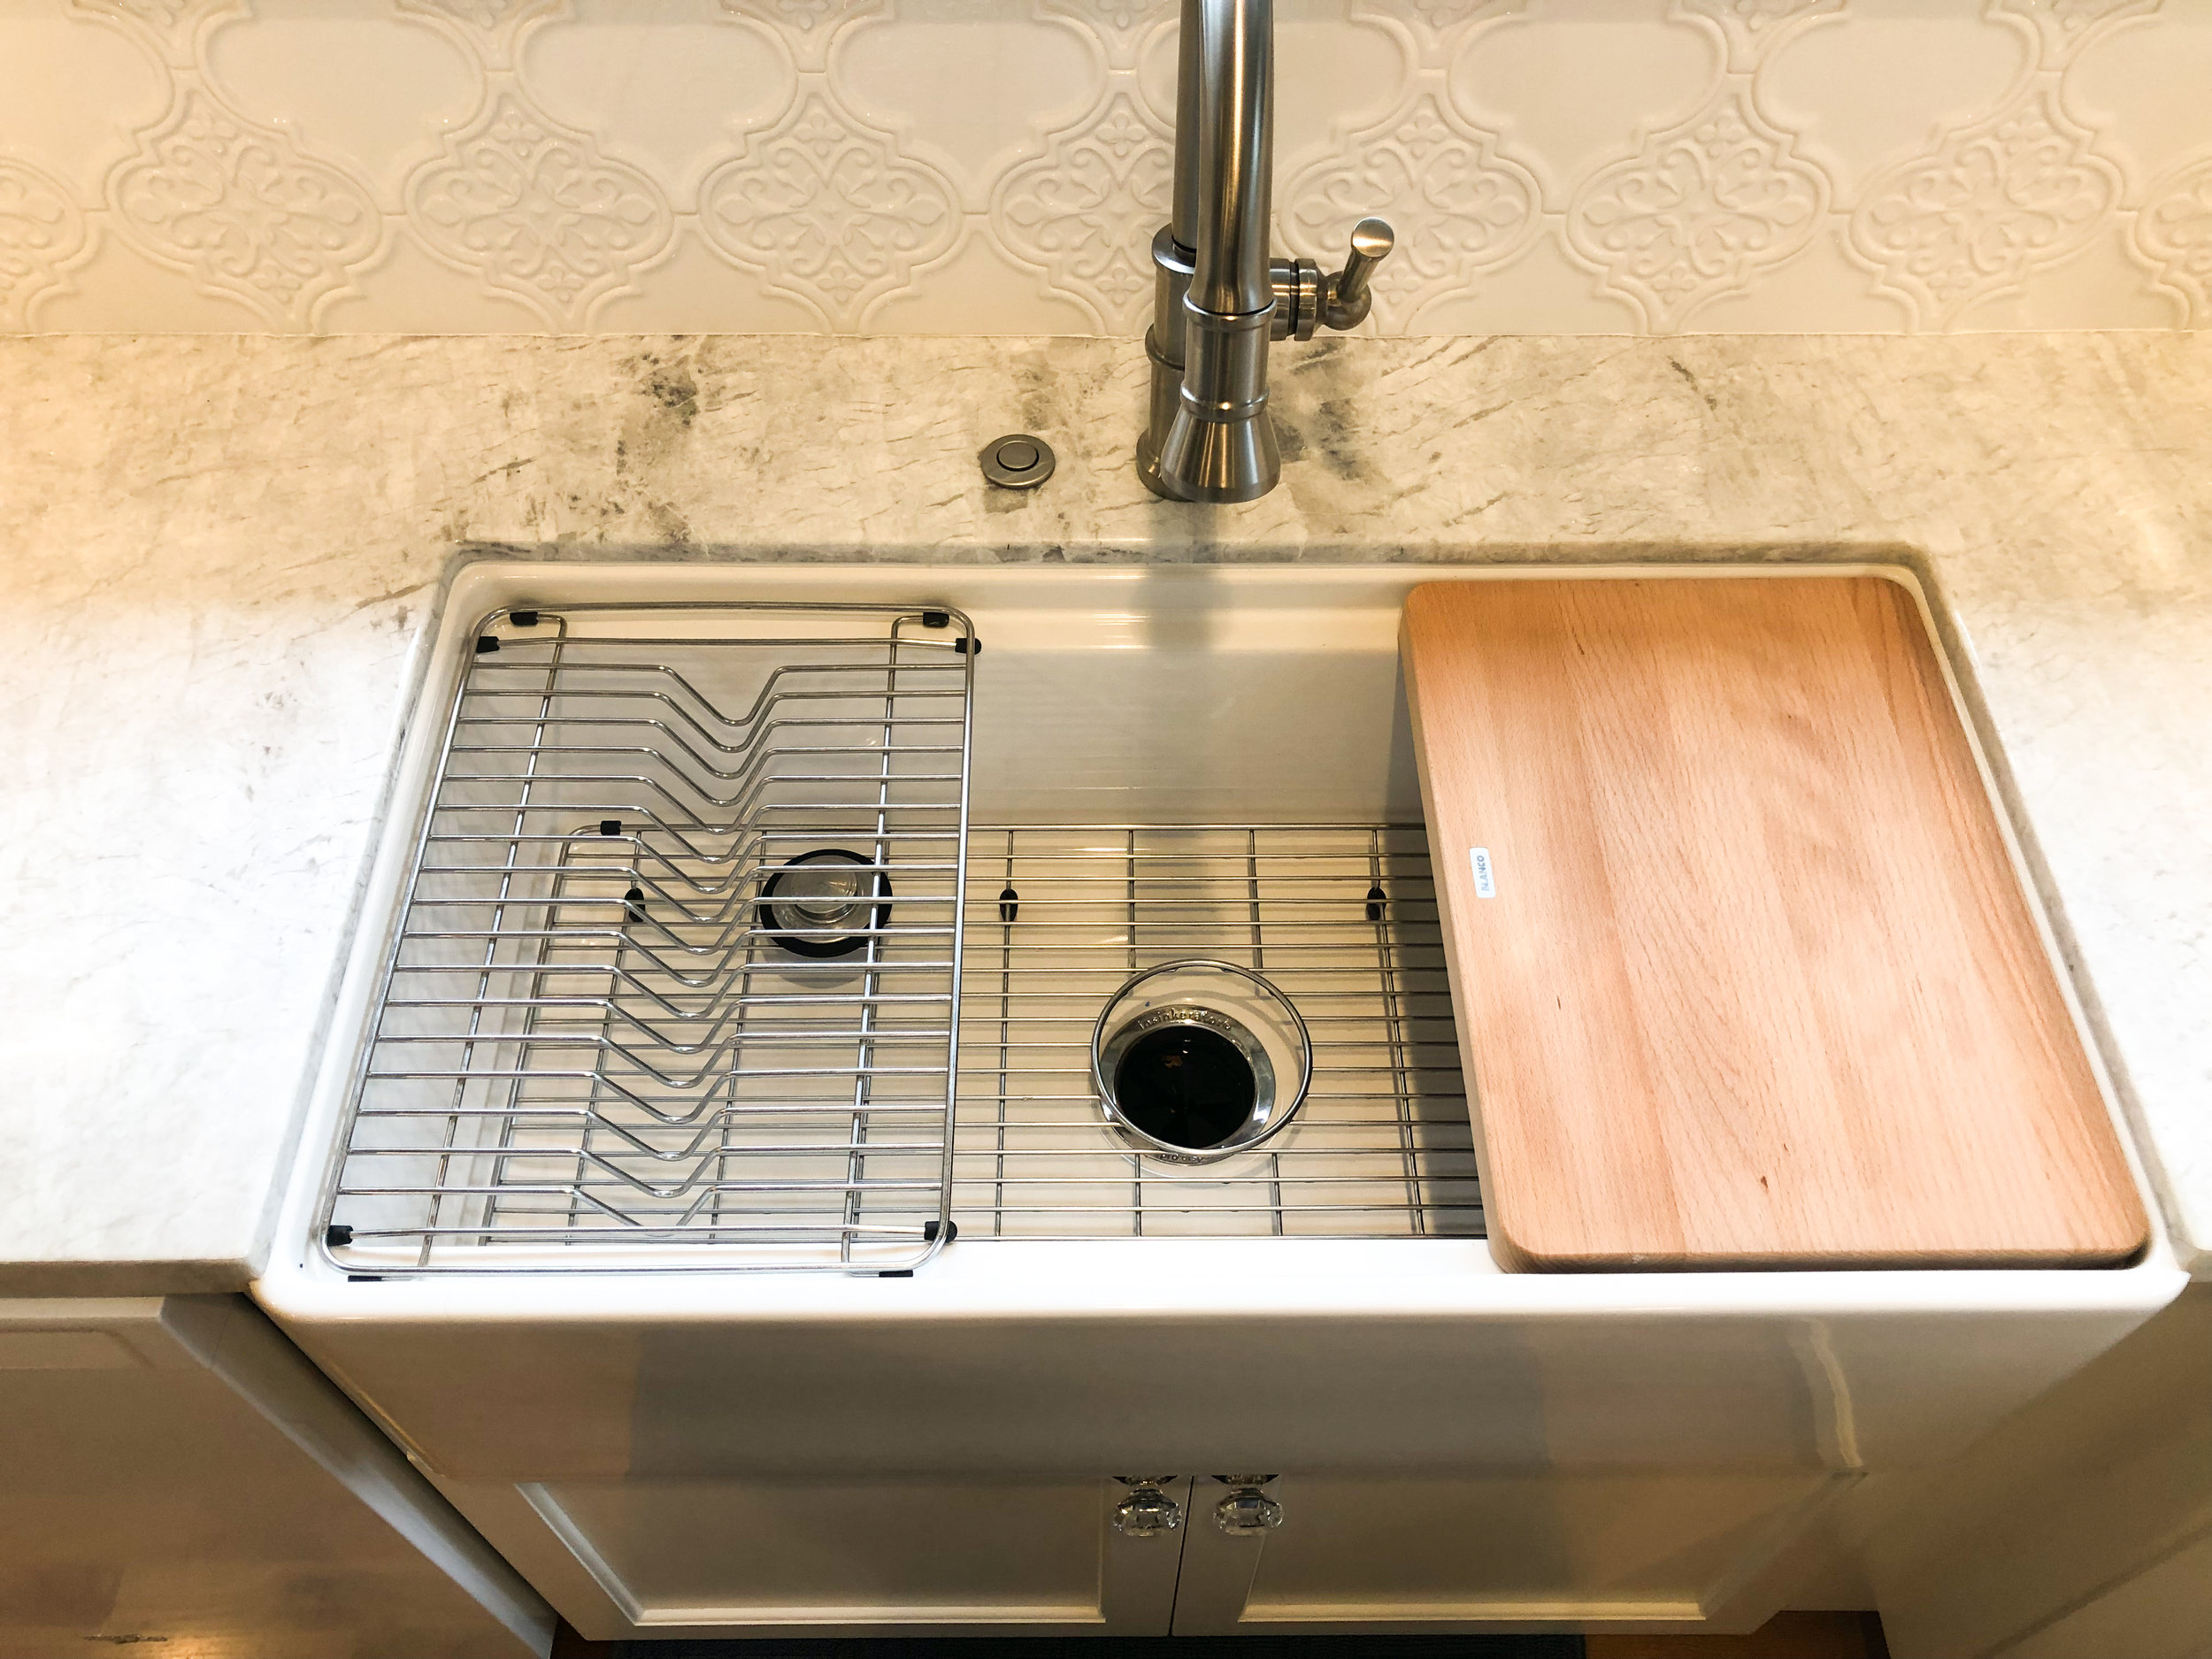 You can still get the bottom grid too… but look at all the additional functions your kitchen sink has now!